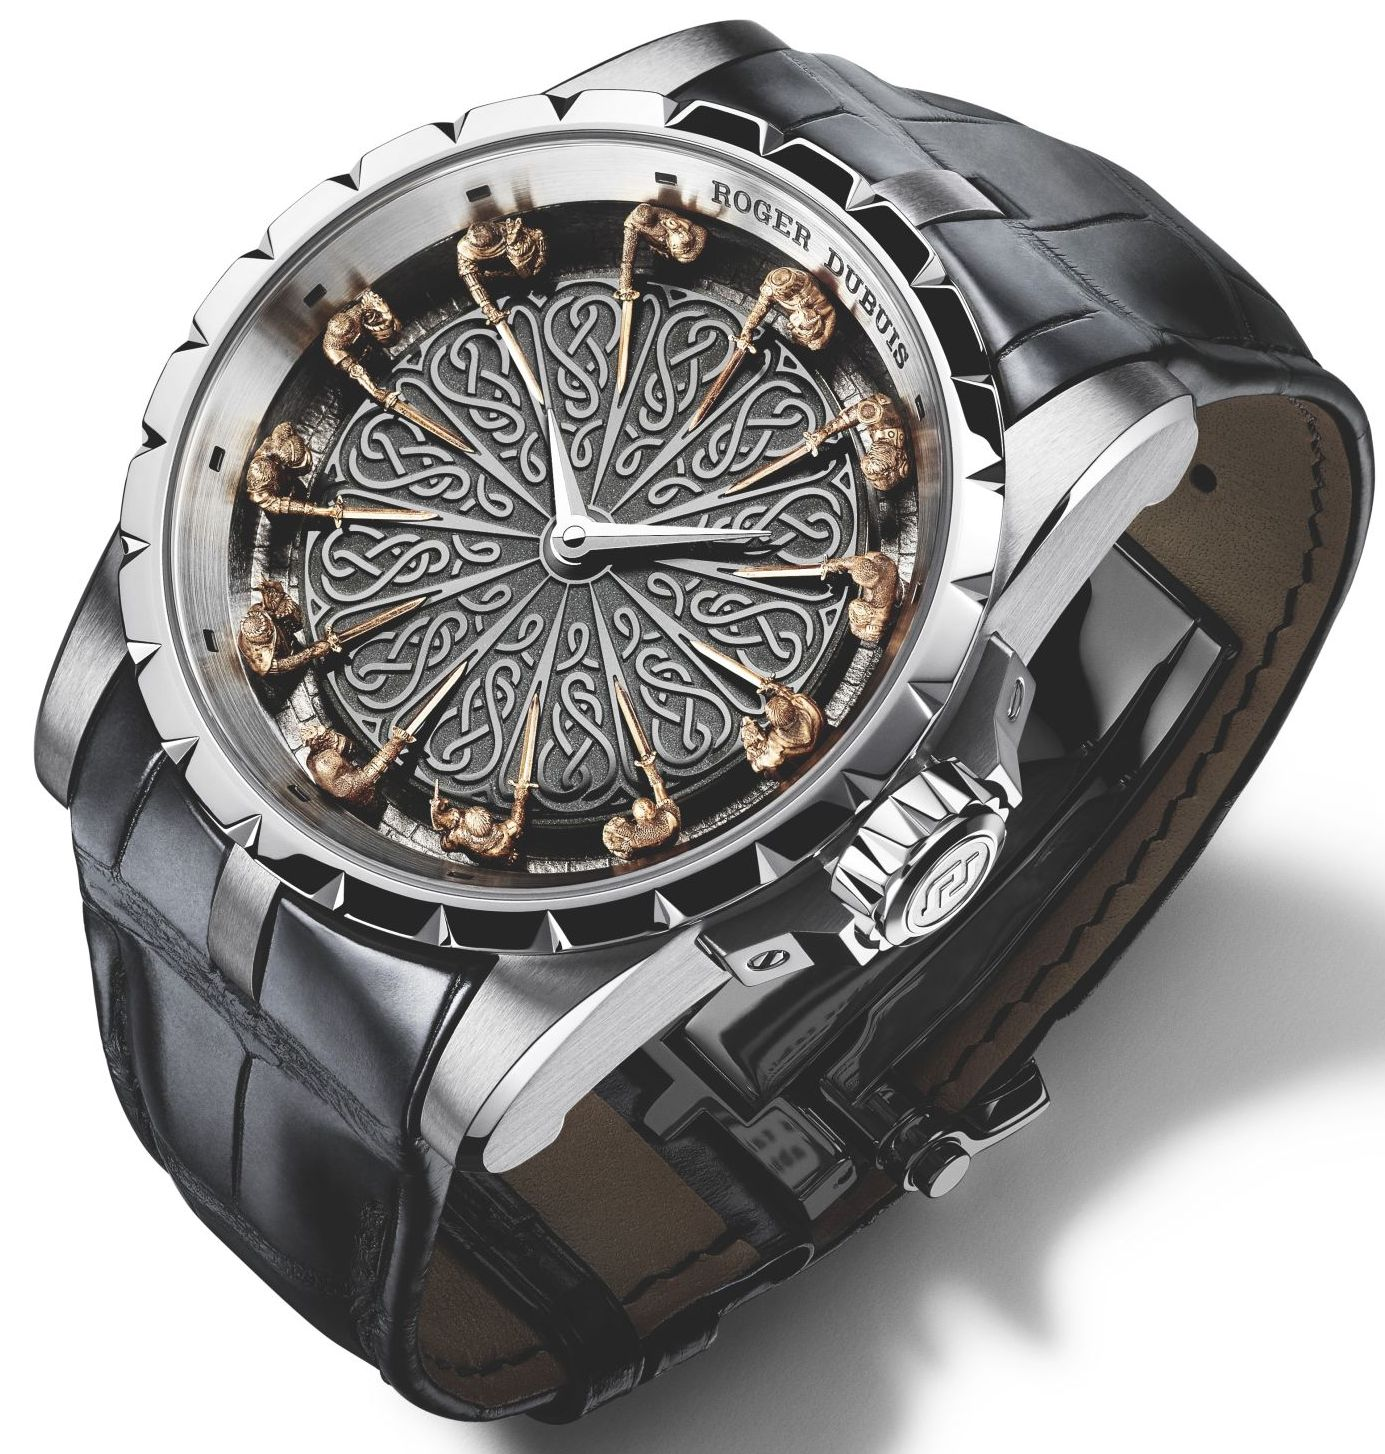 12 Knights Of The Round Table.Roger Dubuis Excalibur Knights Of The Round Table Ii